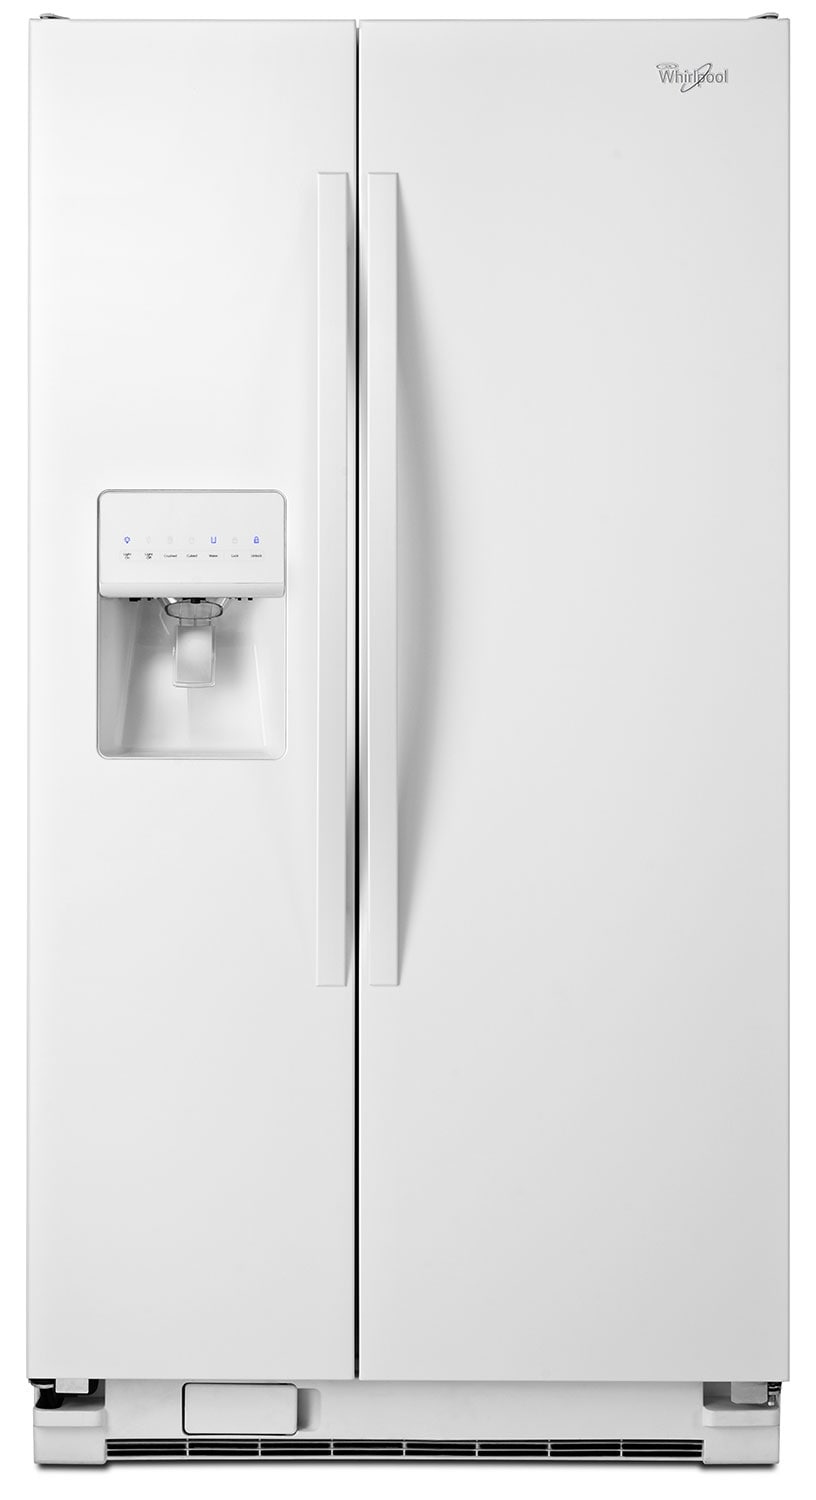 Refrigerators and Freezers - Whirlpool 24 Cu. Ft. Side-by-Side Refrigerator – WRS325FDAW